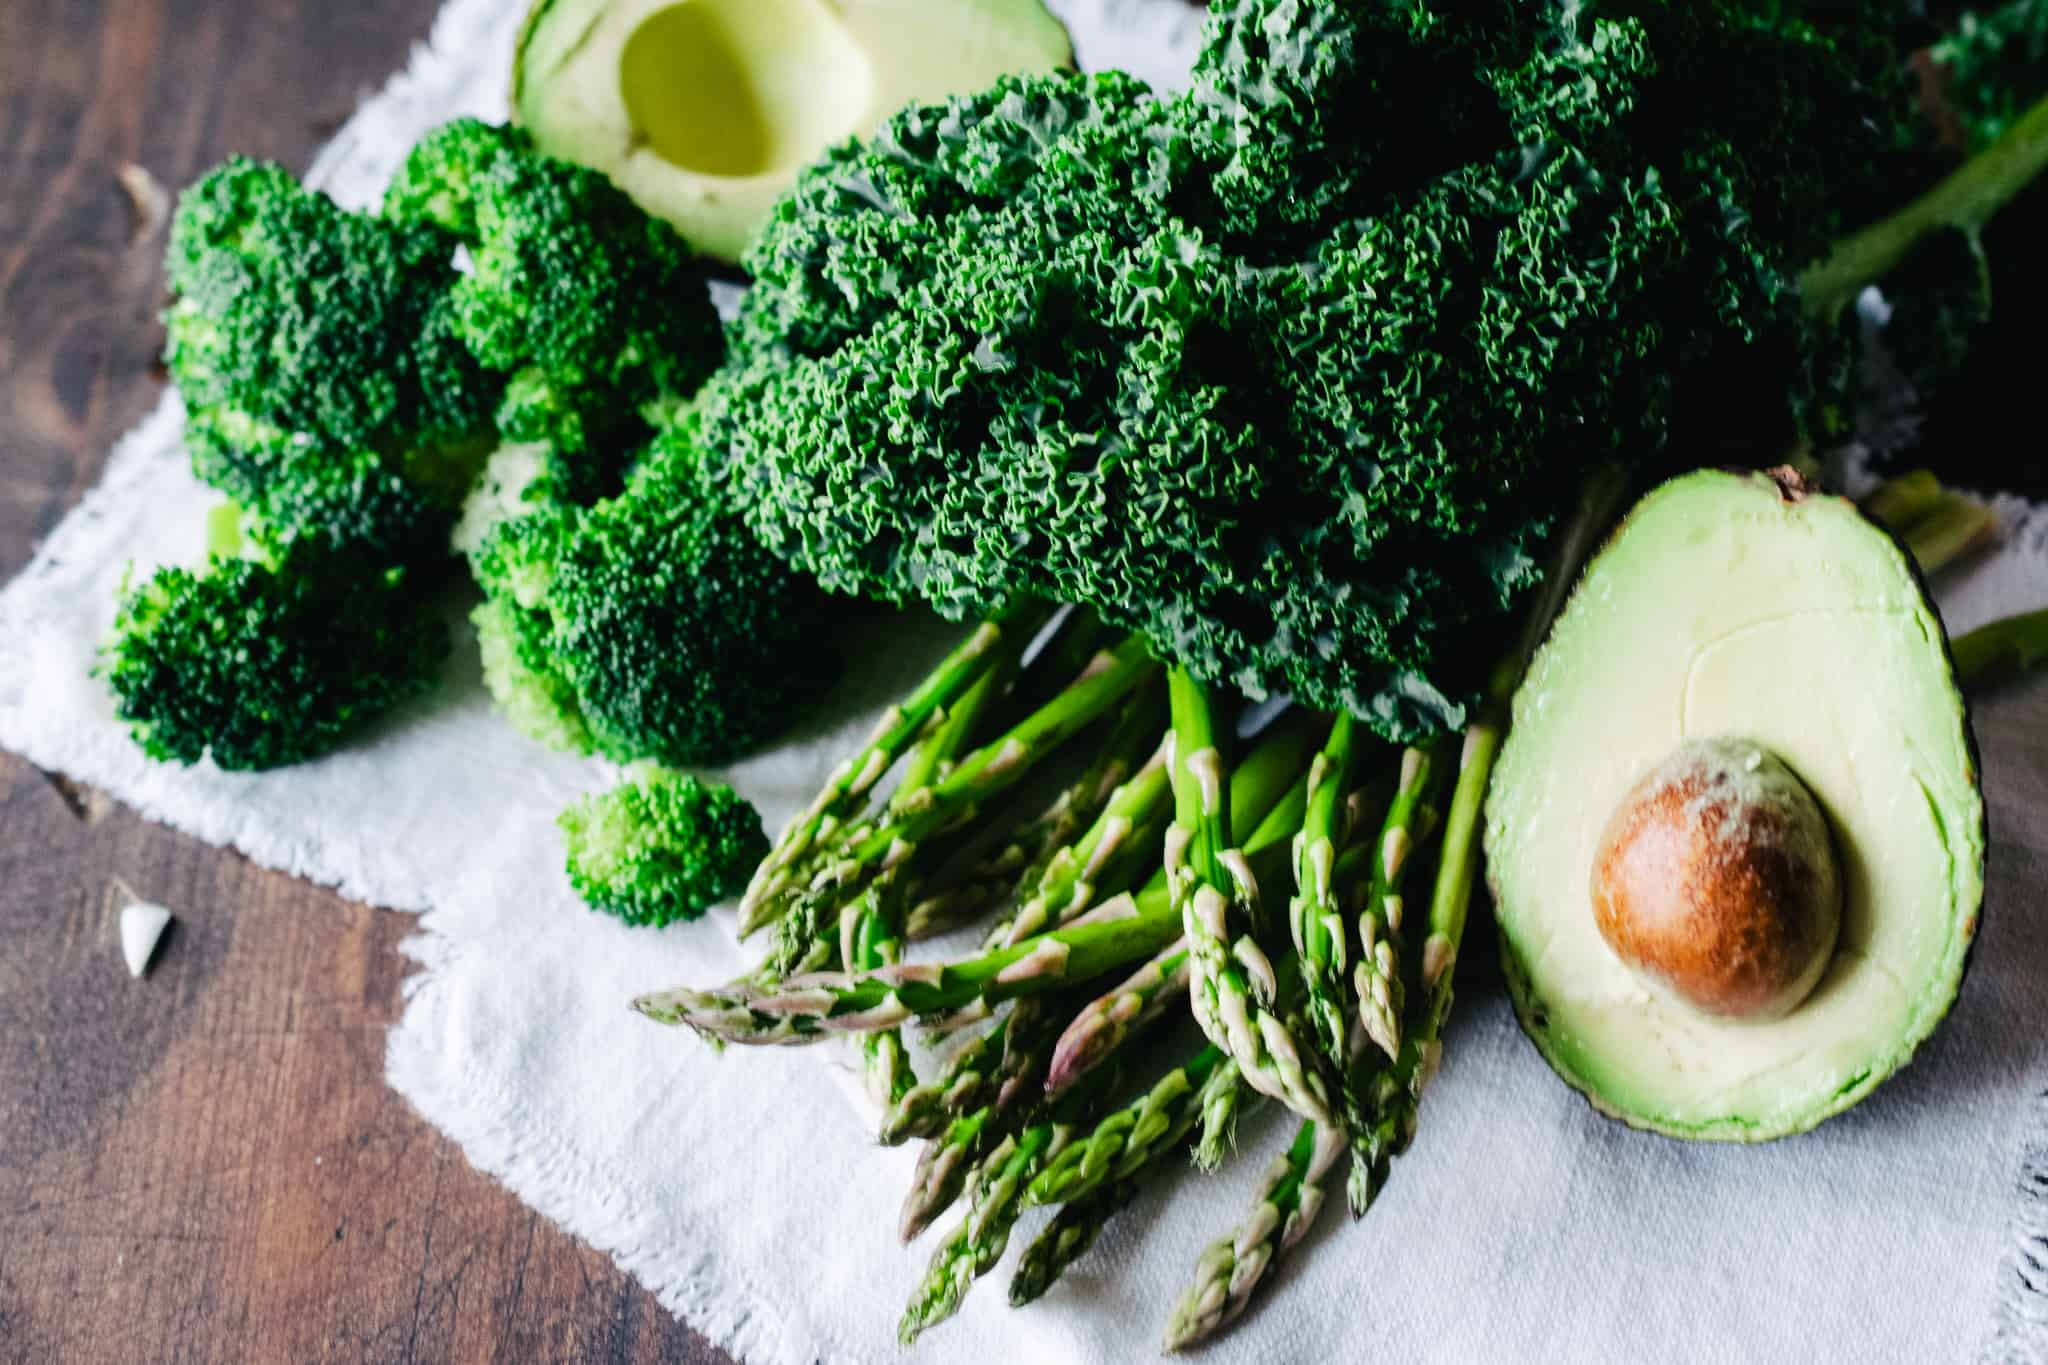 leafy green vegetables, broccoli, kale and avocado on dark wooden table